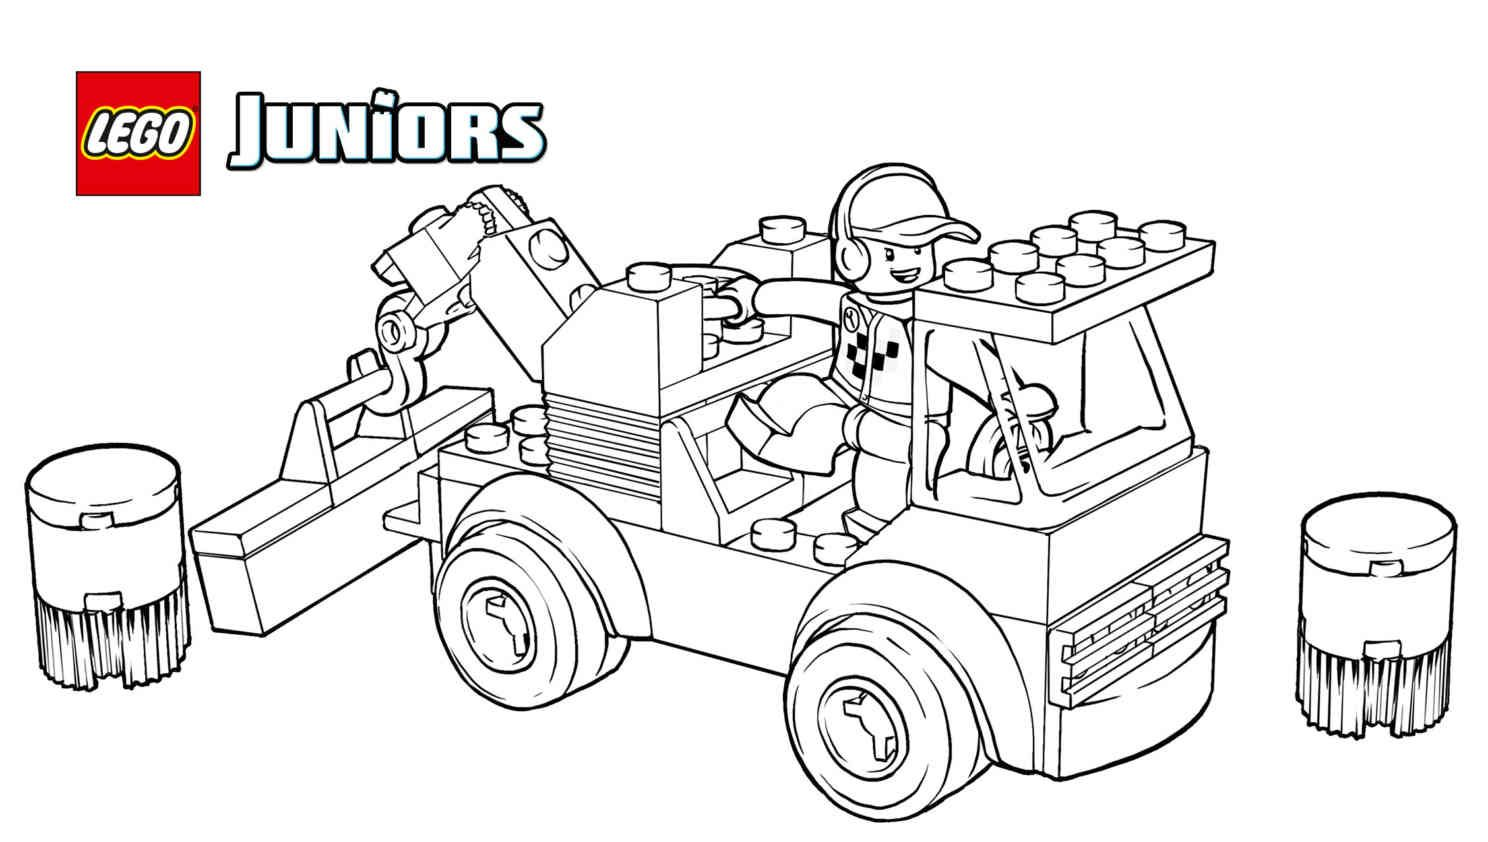 Lego Juniors Racetrack Tow Truck Coloring Page Truck Coloring Pages Coloring Sheets Coloring Pages